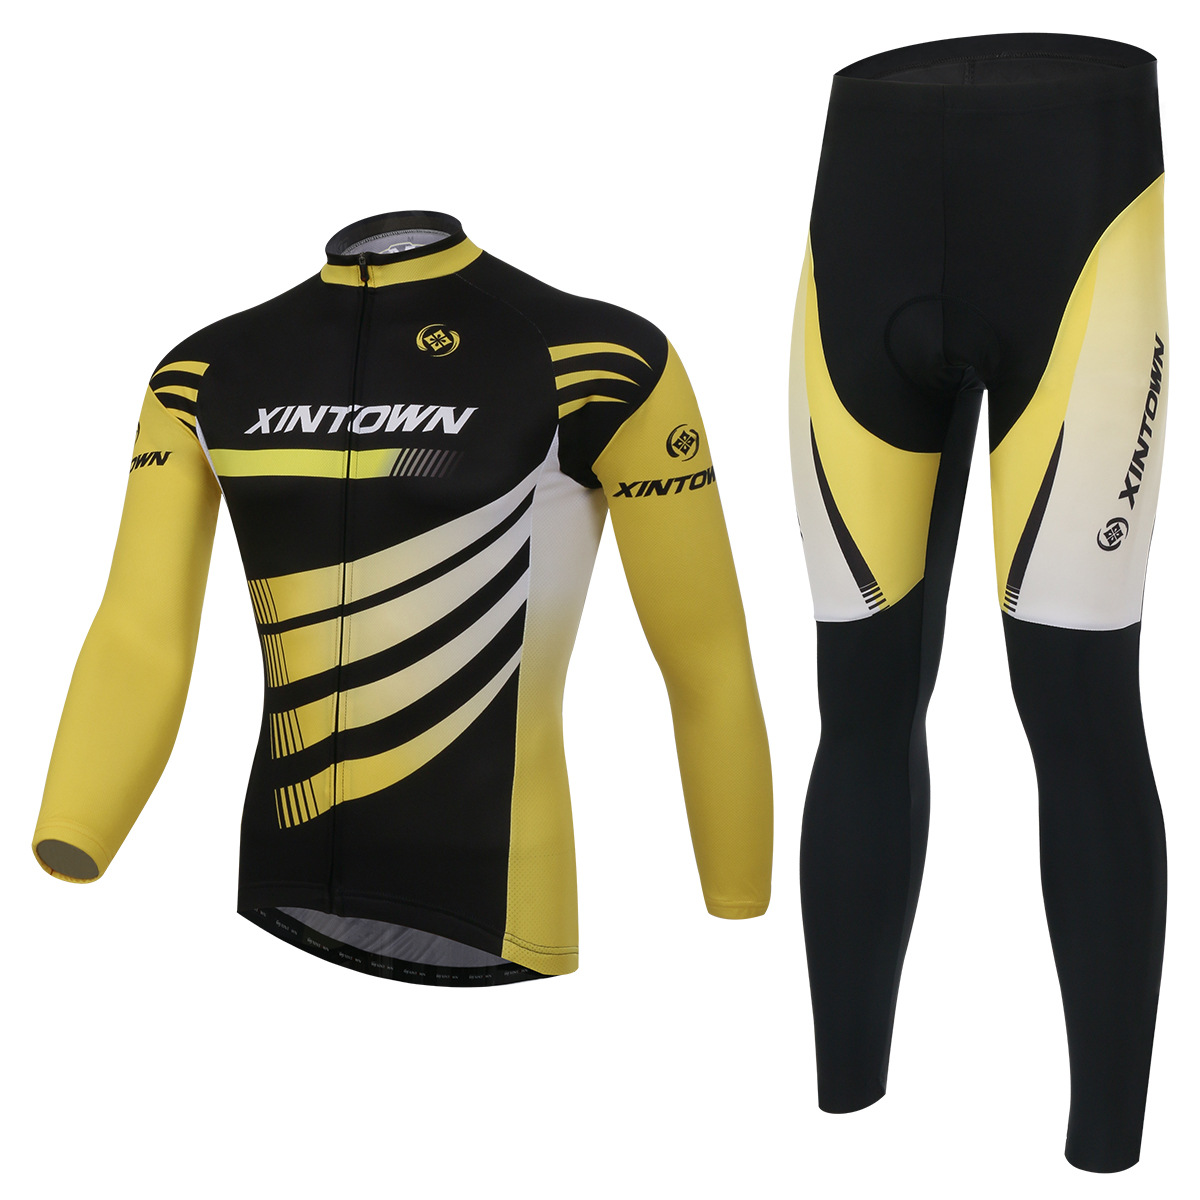 XINTOWN Aeolian bike riding Jersey long sleeve wear suit bicycle clothing spring and autumn 2015 new cycling sportswear